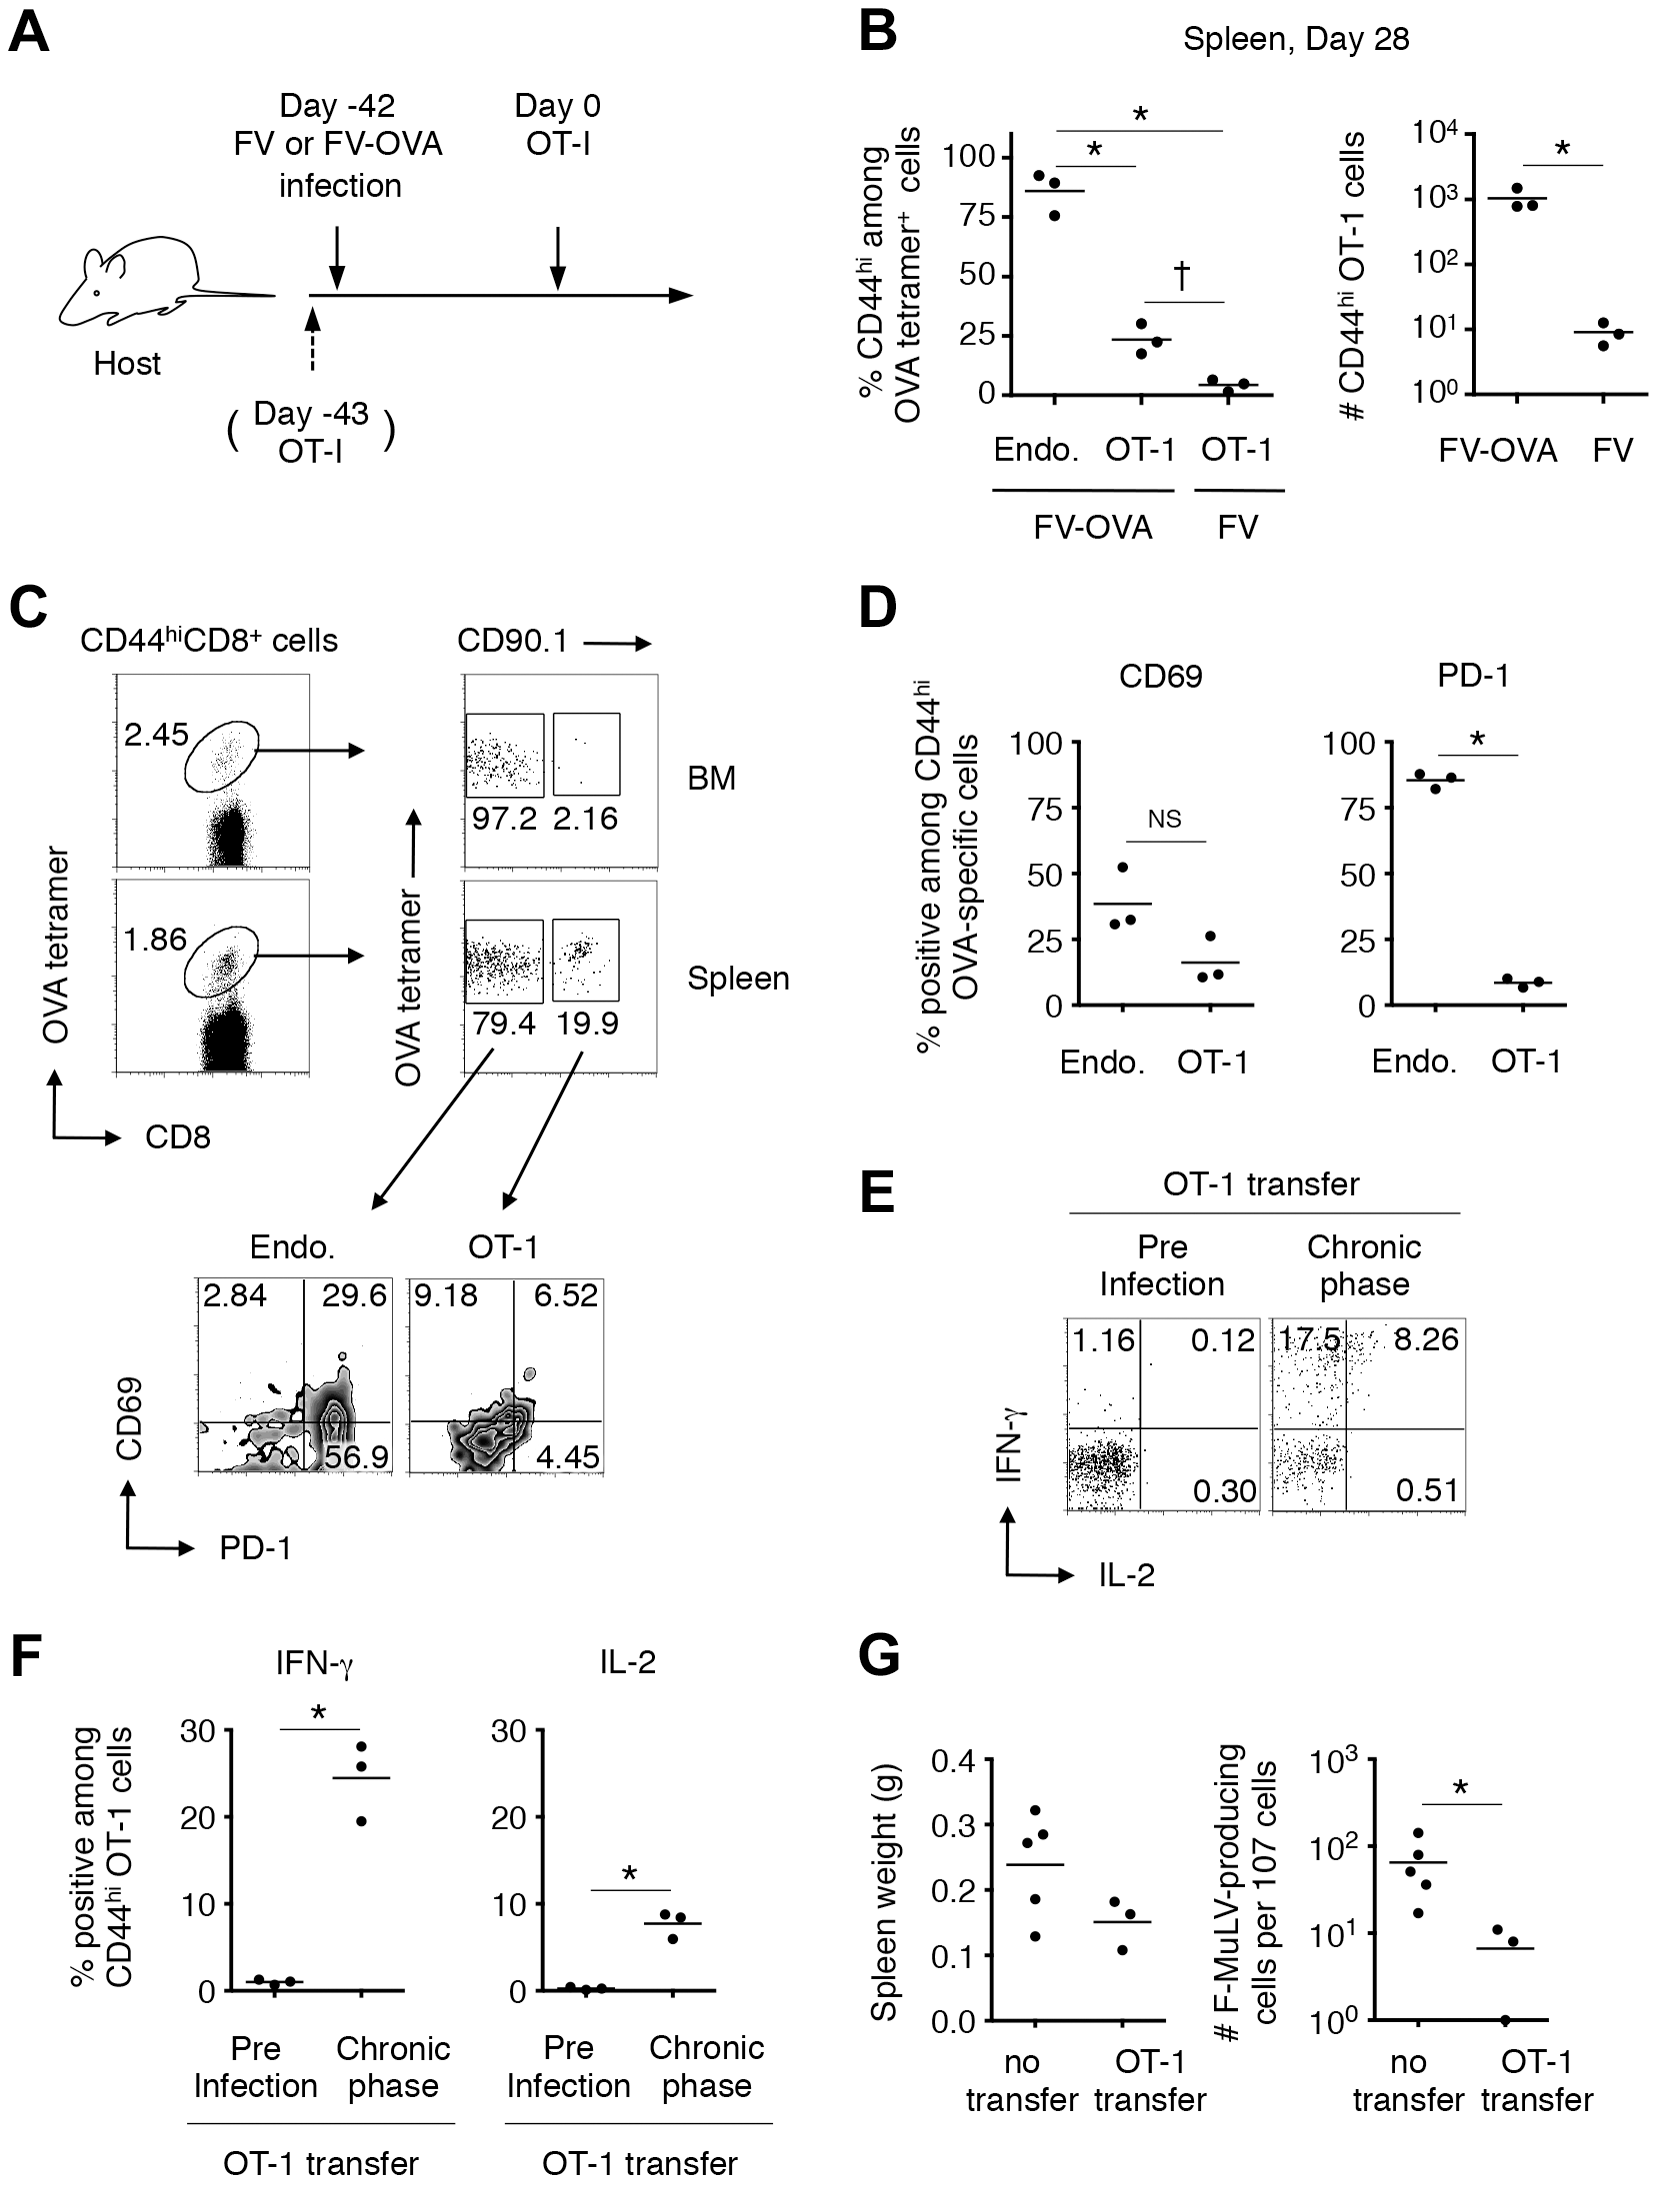 FV-specific CD8<sup>+</sup> T cells can differentiate into functional memory CD8<sup>+</sup> T cells if recruited during the chronic phase of infection.